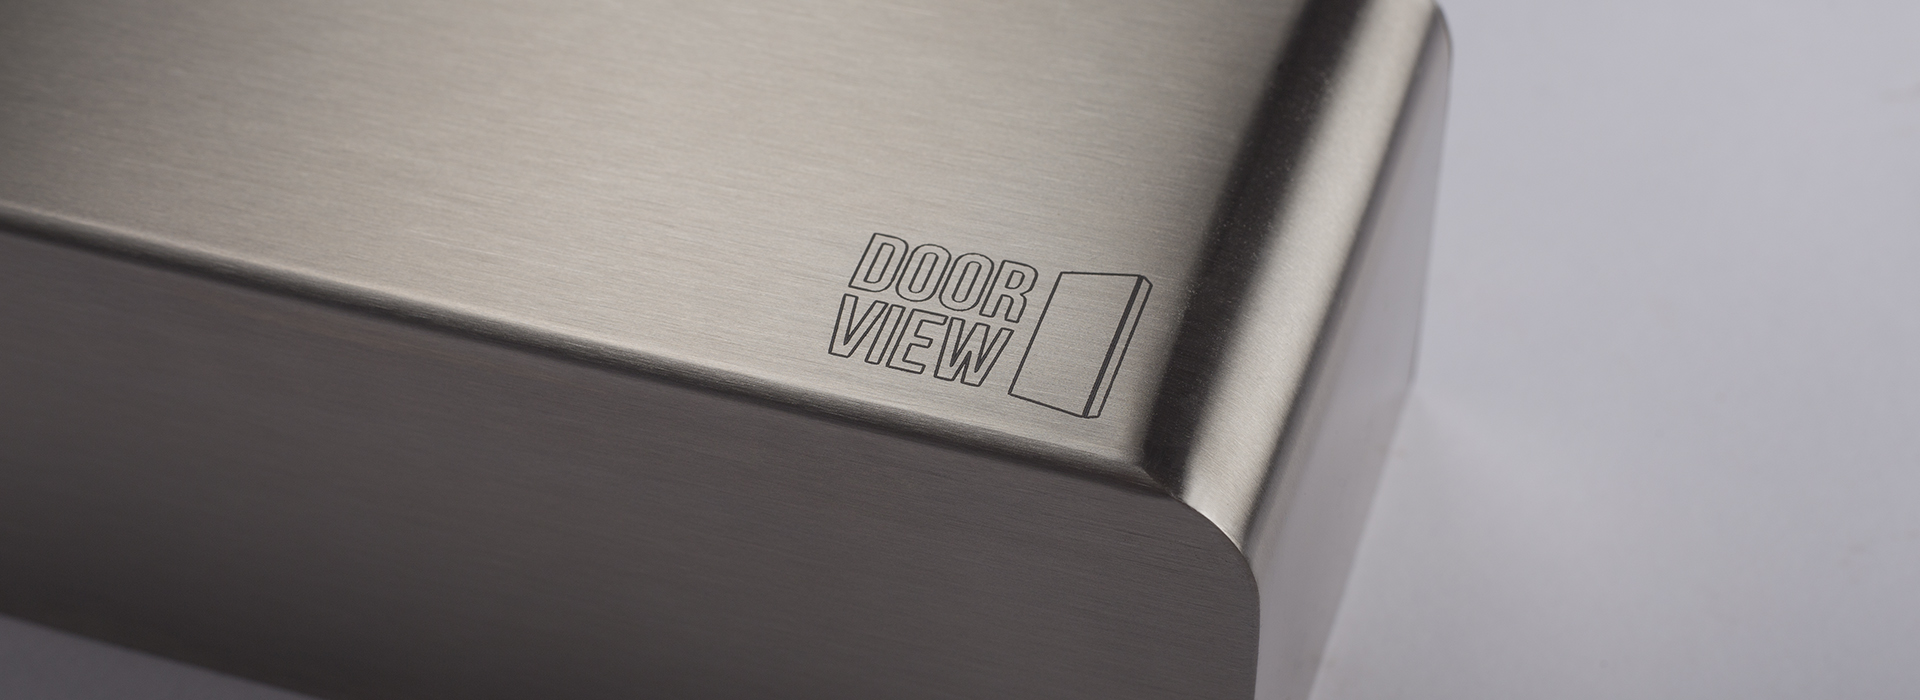 doorview_closer_cover_header_3